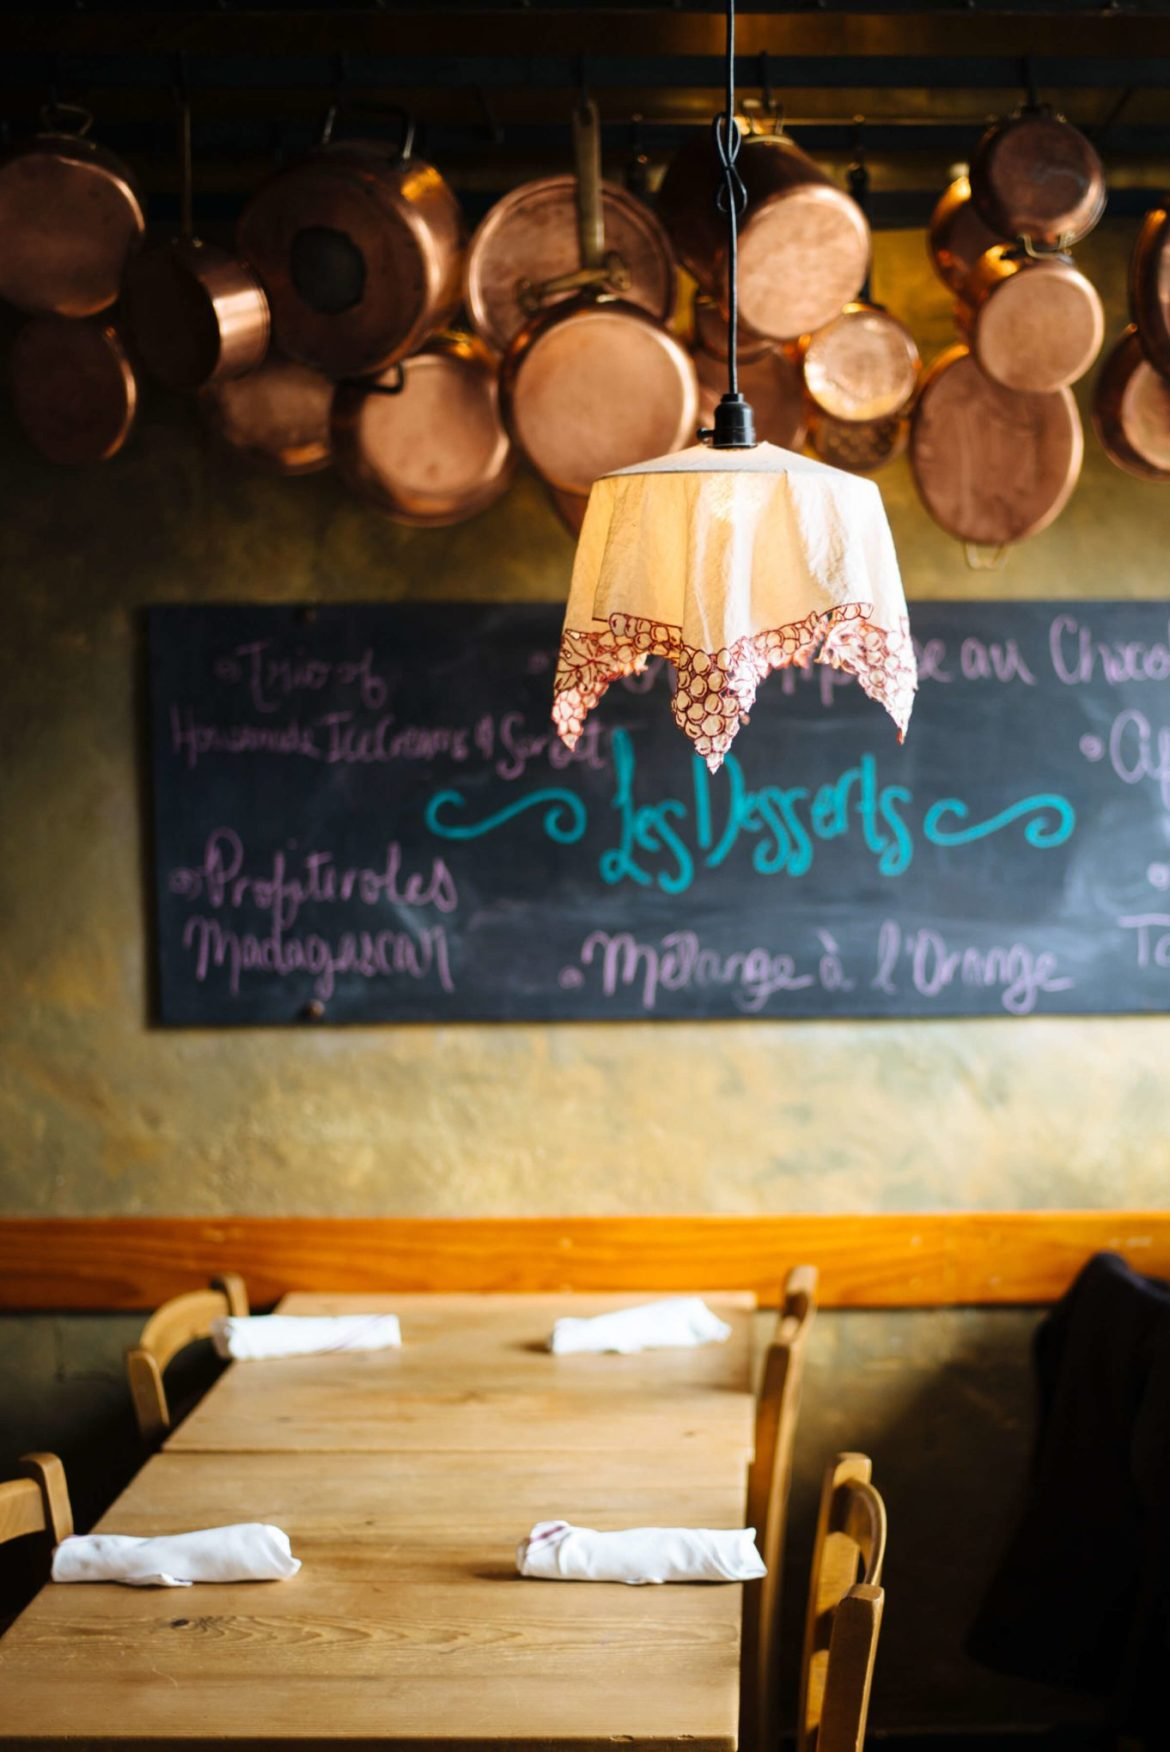 Looking for one of the best restaurants in Carmel, try La Bicyclette - it has tons of copper pans hanging from the ceiling and chalk boards on the walls for daily specials, thetasteedit